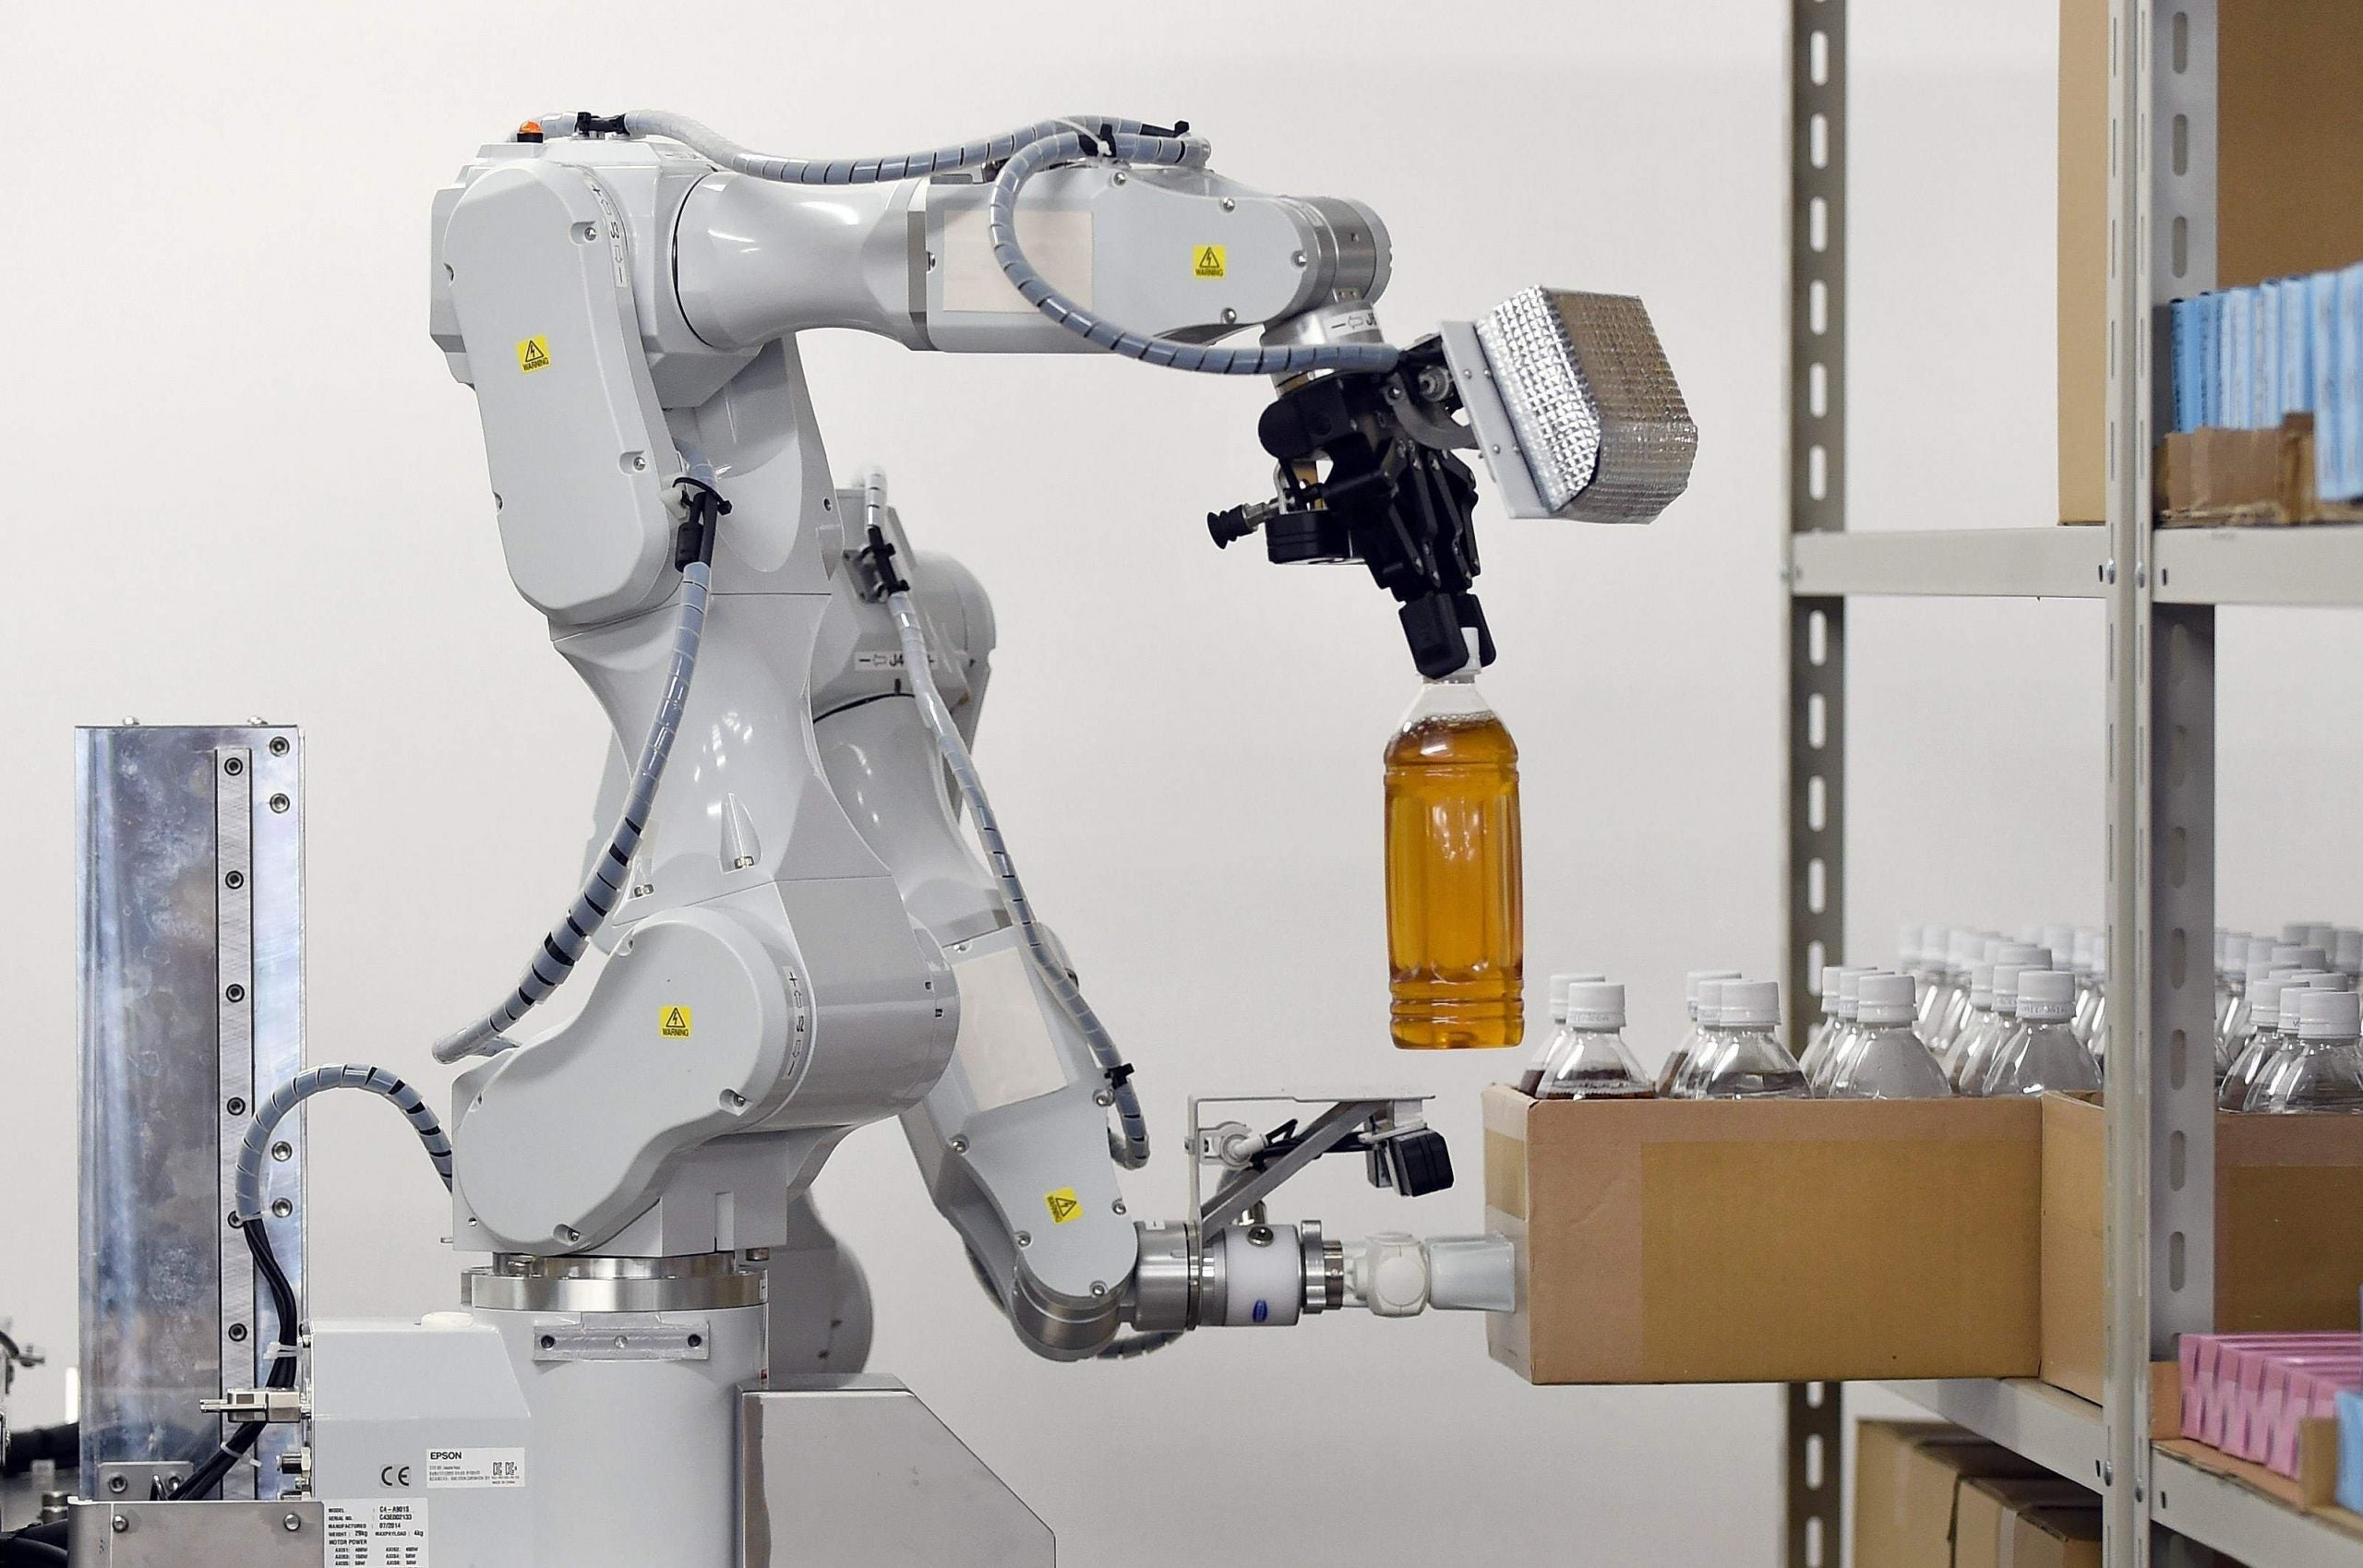 Robots are coming for your job. That might not be bad news